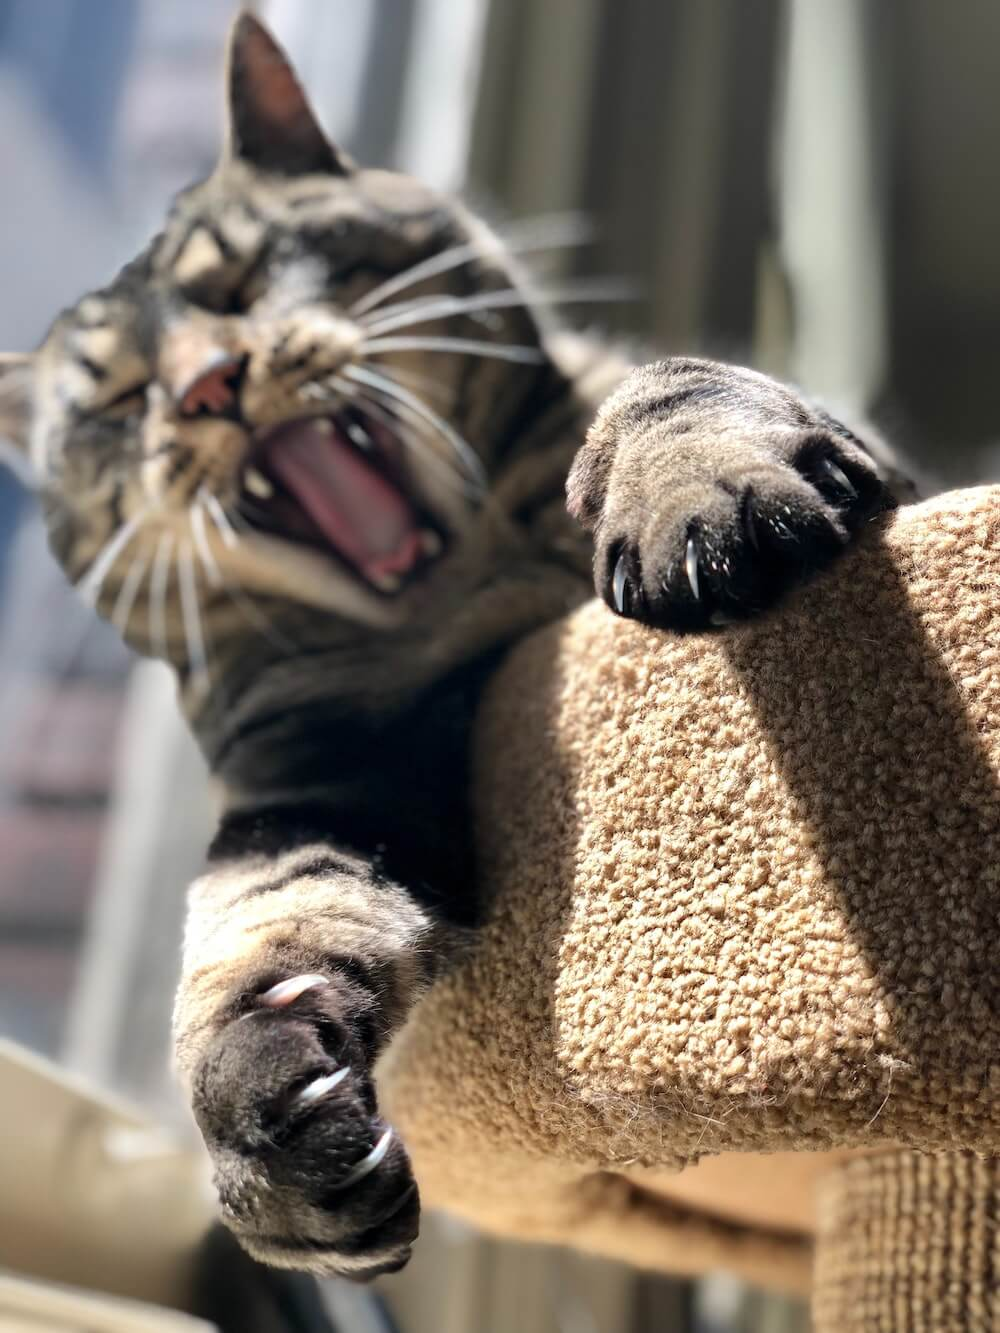 Tabby cat clawing at scratching post